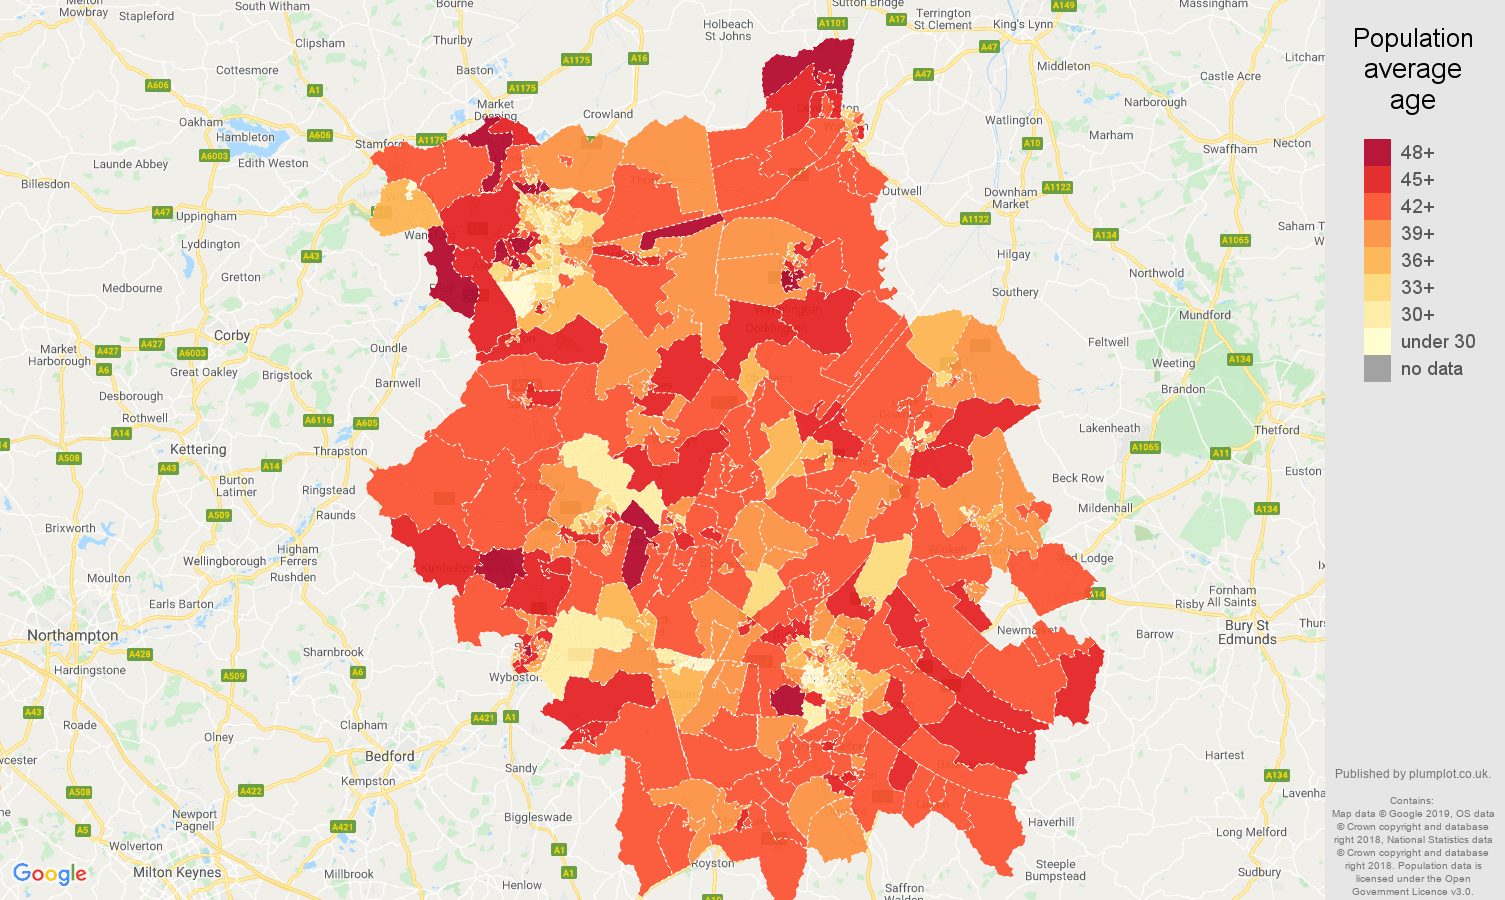 Cambridgeshire population average age map